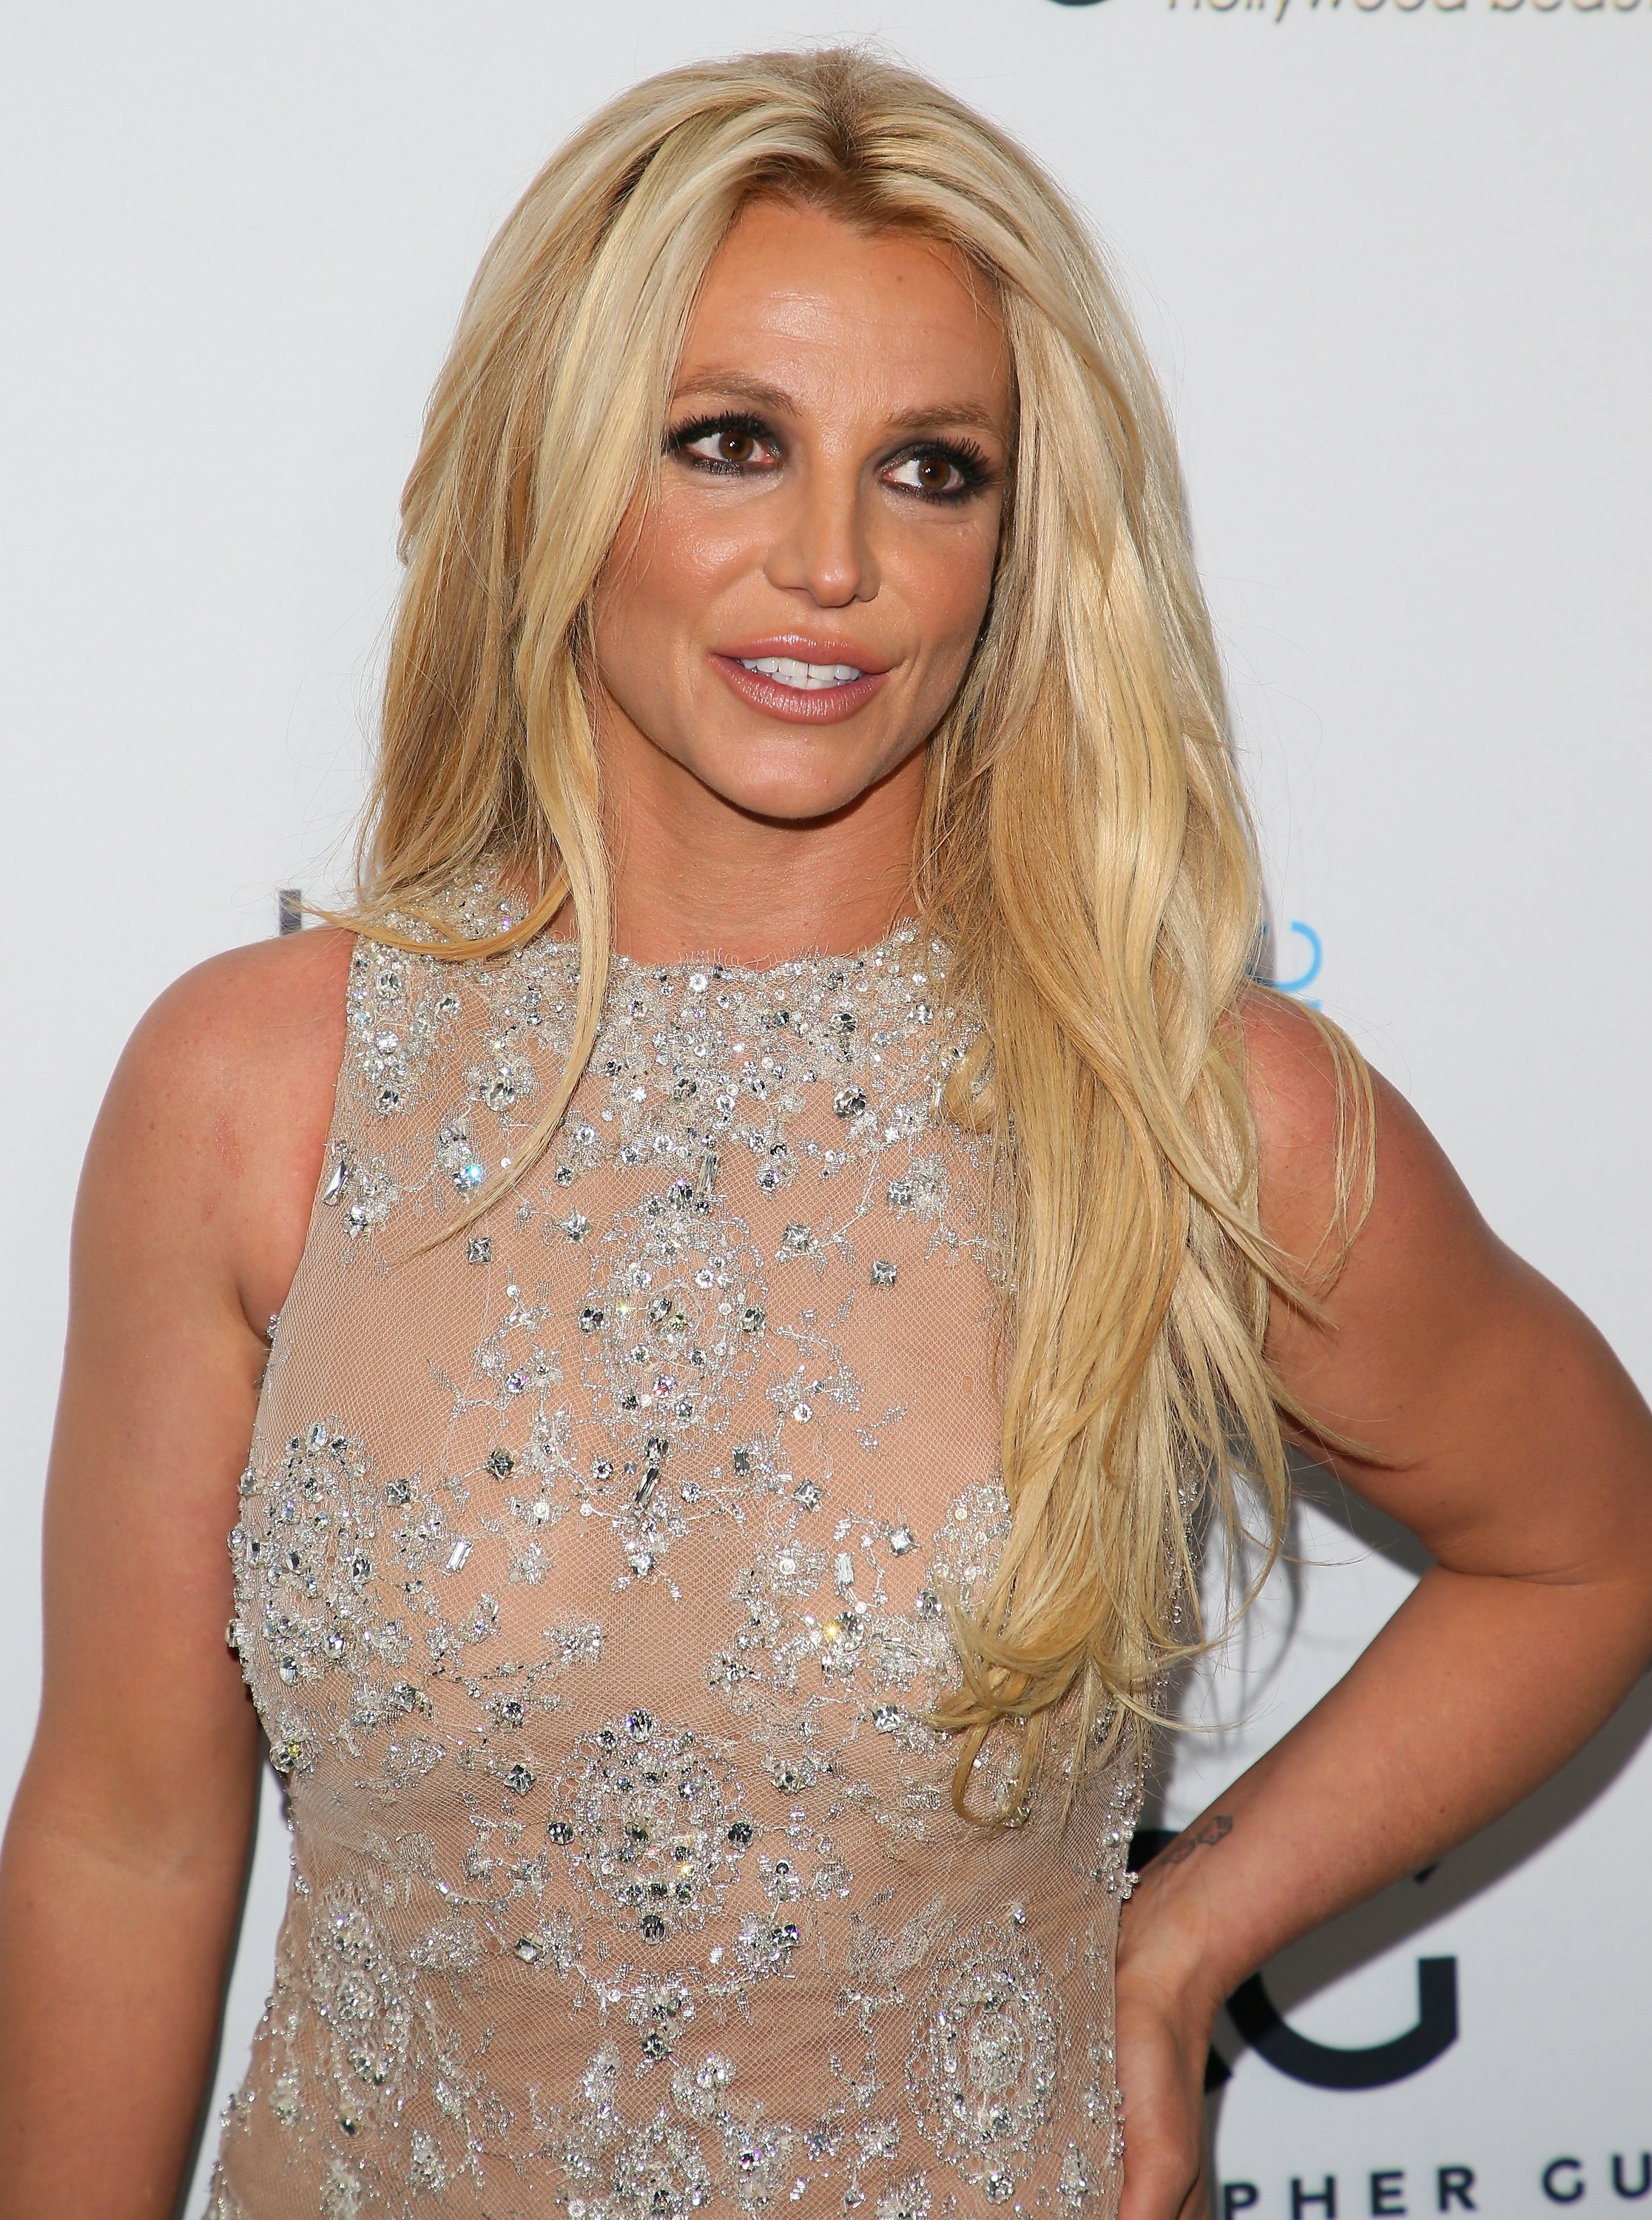 Britney Spears at the 4th Hollywood Beauty Awards in Hollywood, California | Photo: JB Lacroix/WireImage via Getty Images